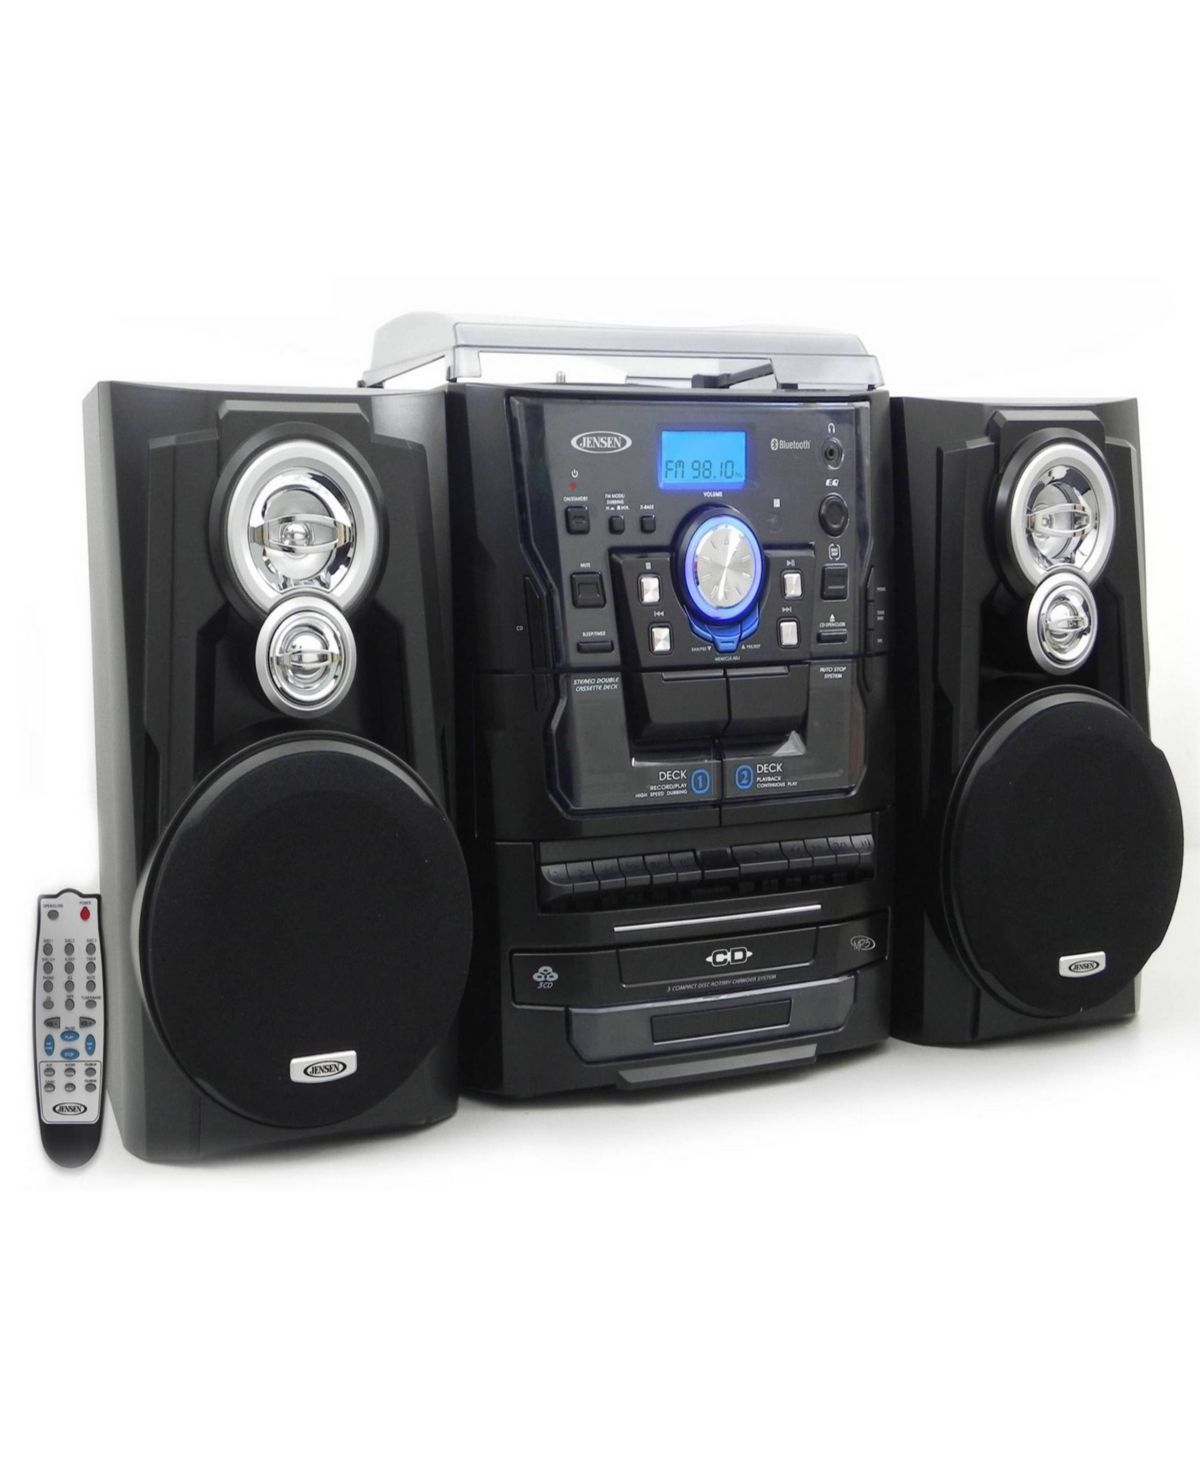 Bluetooth 3-Speed Stereo Turntable 3 CD Changer Music System with Dual Cassette Deck and Remote Control #musicsystem